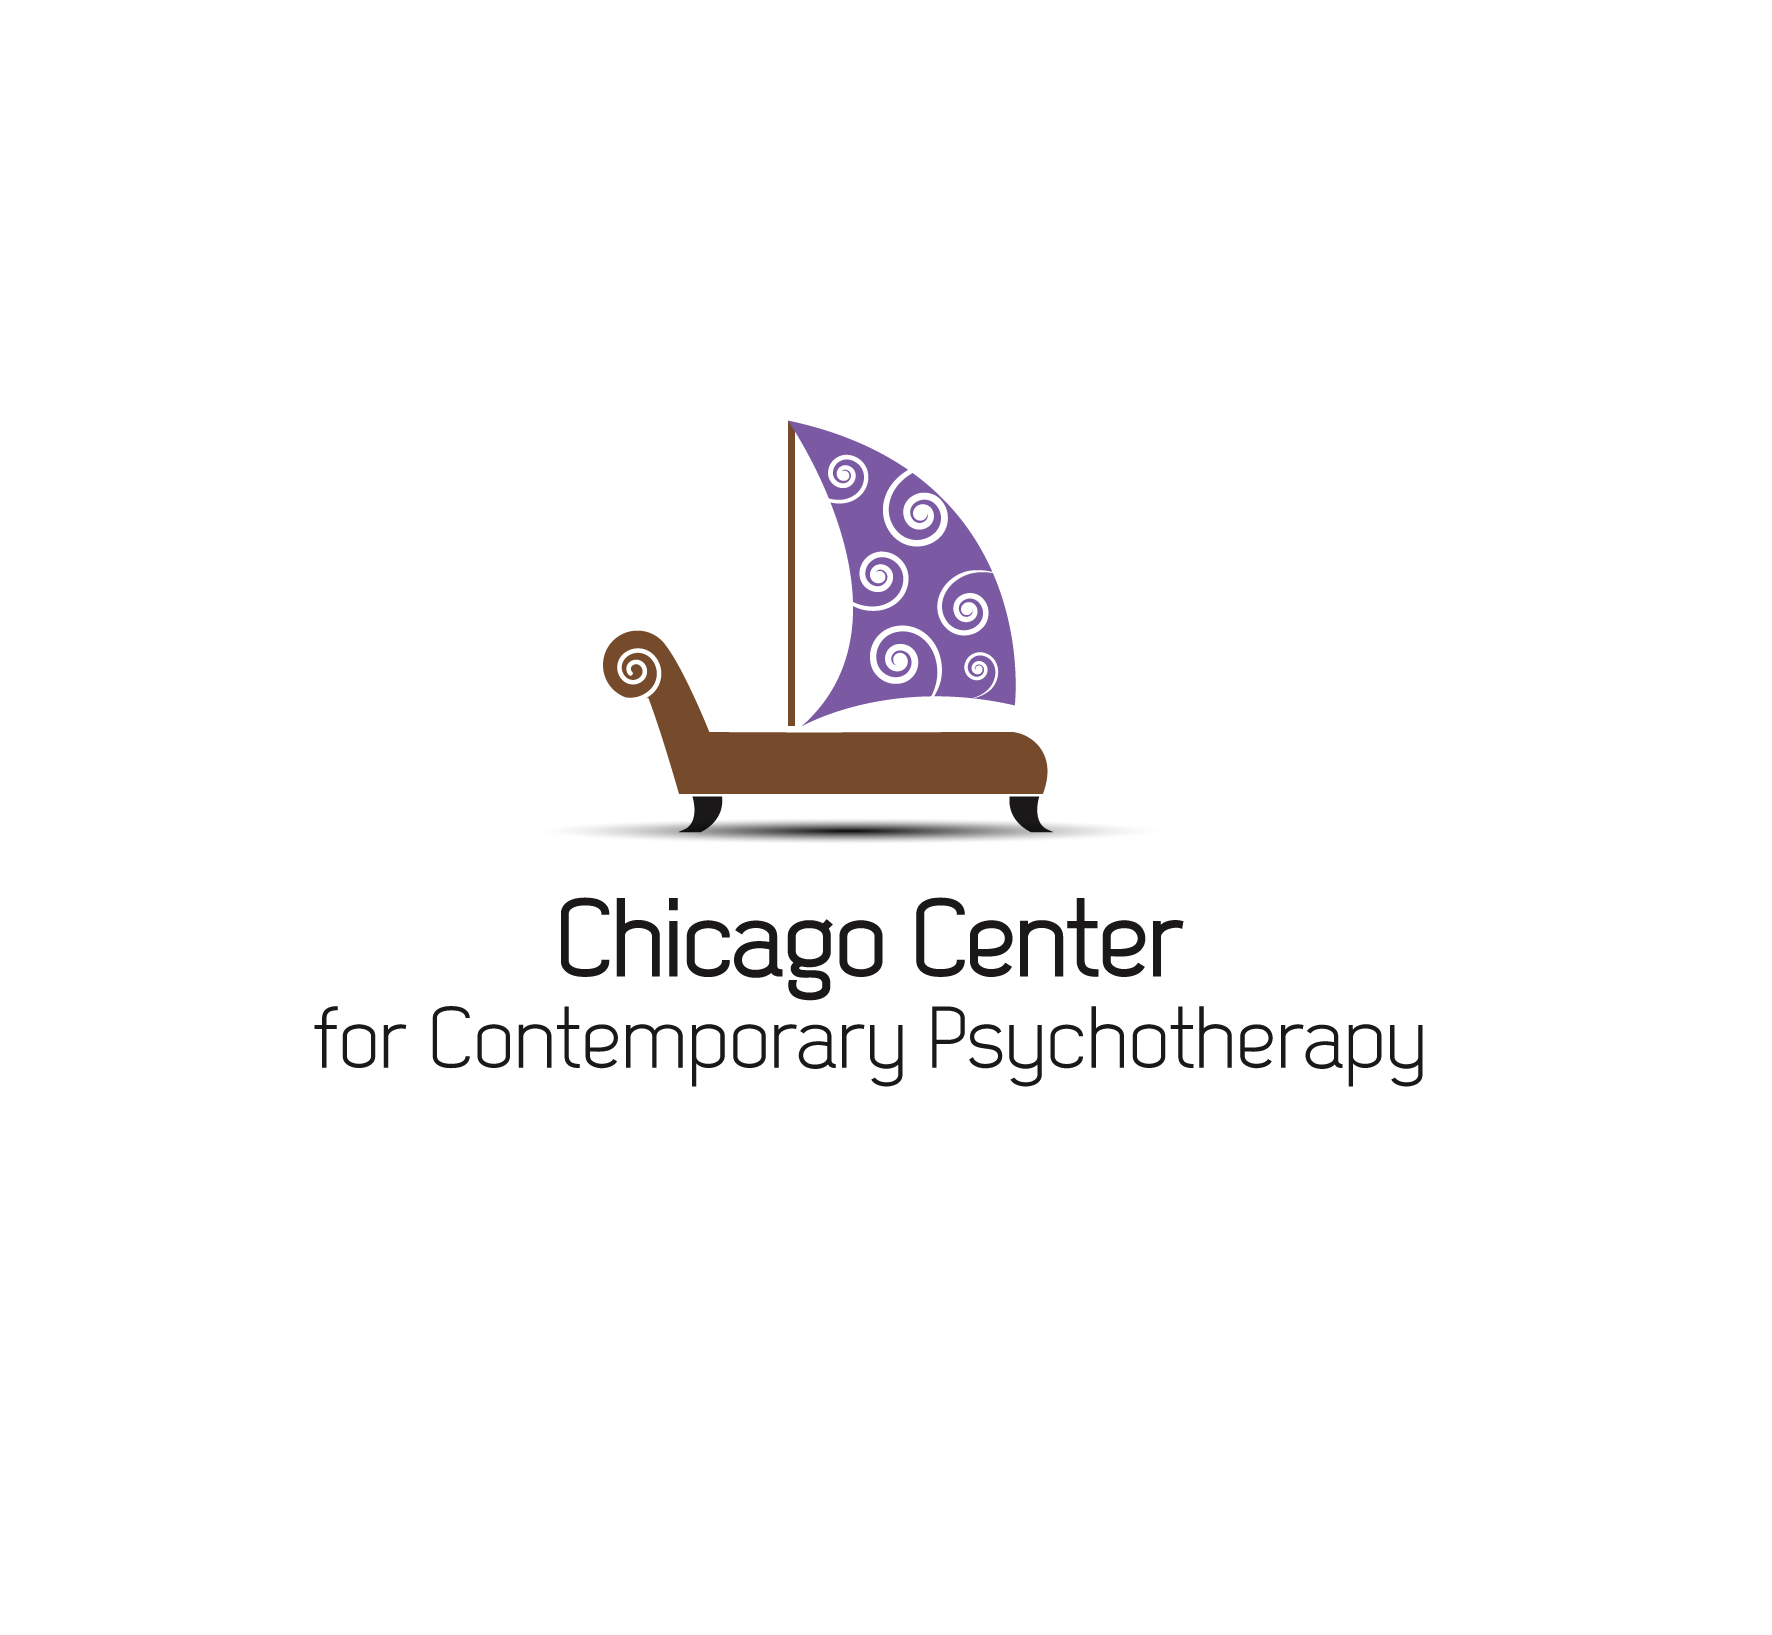 Logo Design by luna - Entry No. 6 in the Logo Design Contest Inspiring Logo Design for Chicago Center for Contemporary Psychotherapy.